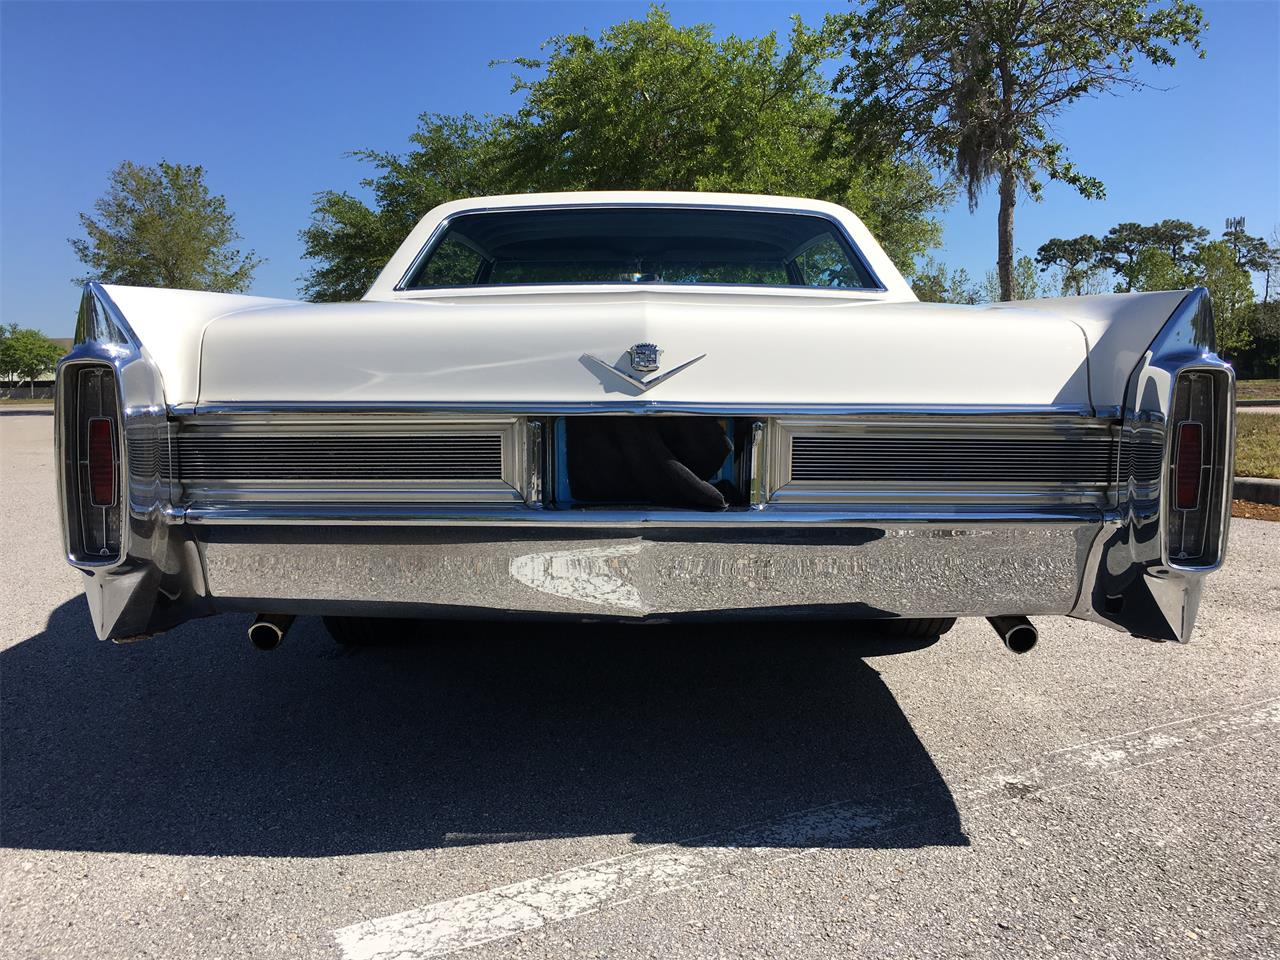 Large Picture of Classic '65 Cadillac Coupe located in Tampa Florida - $19,700.00 Offered by a Private Seller - N3CT